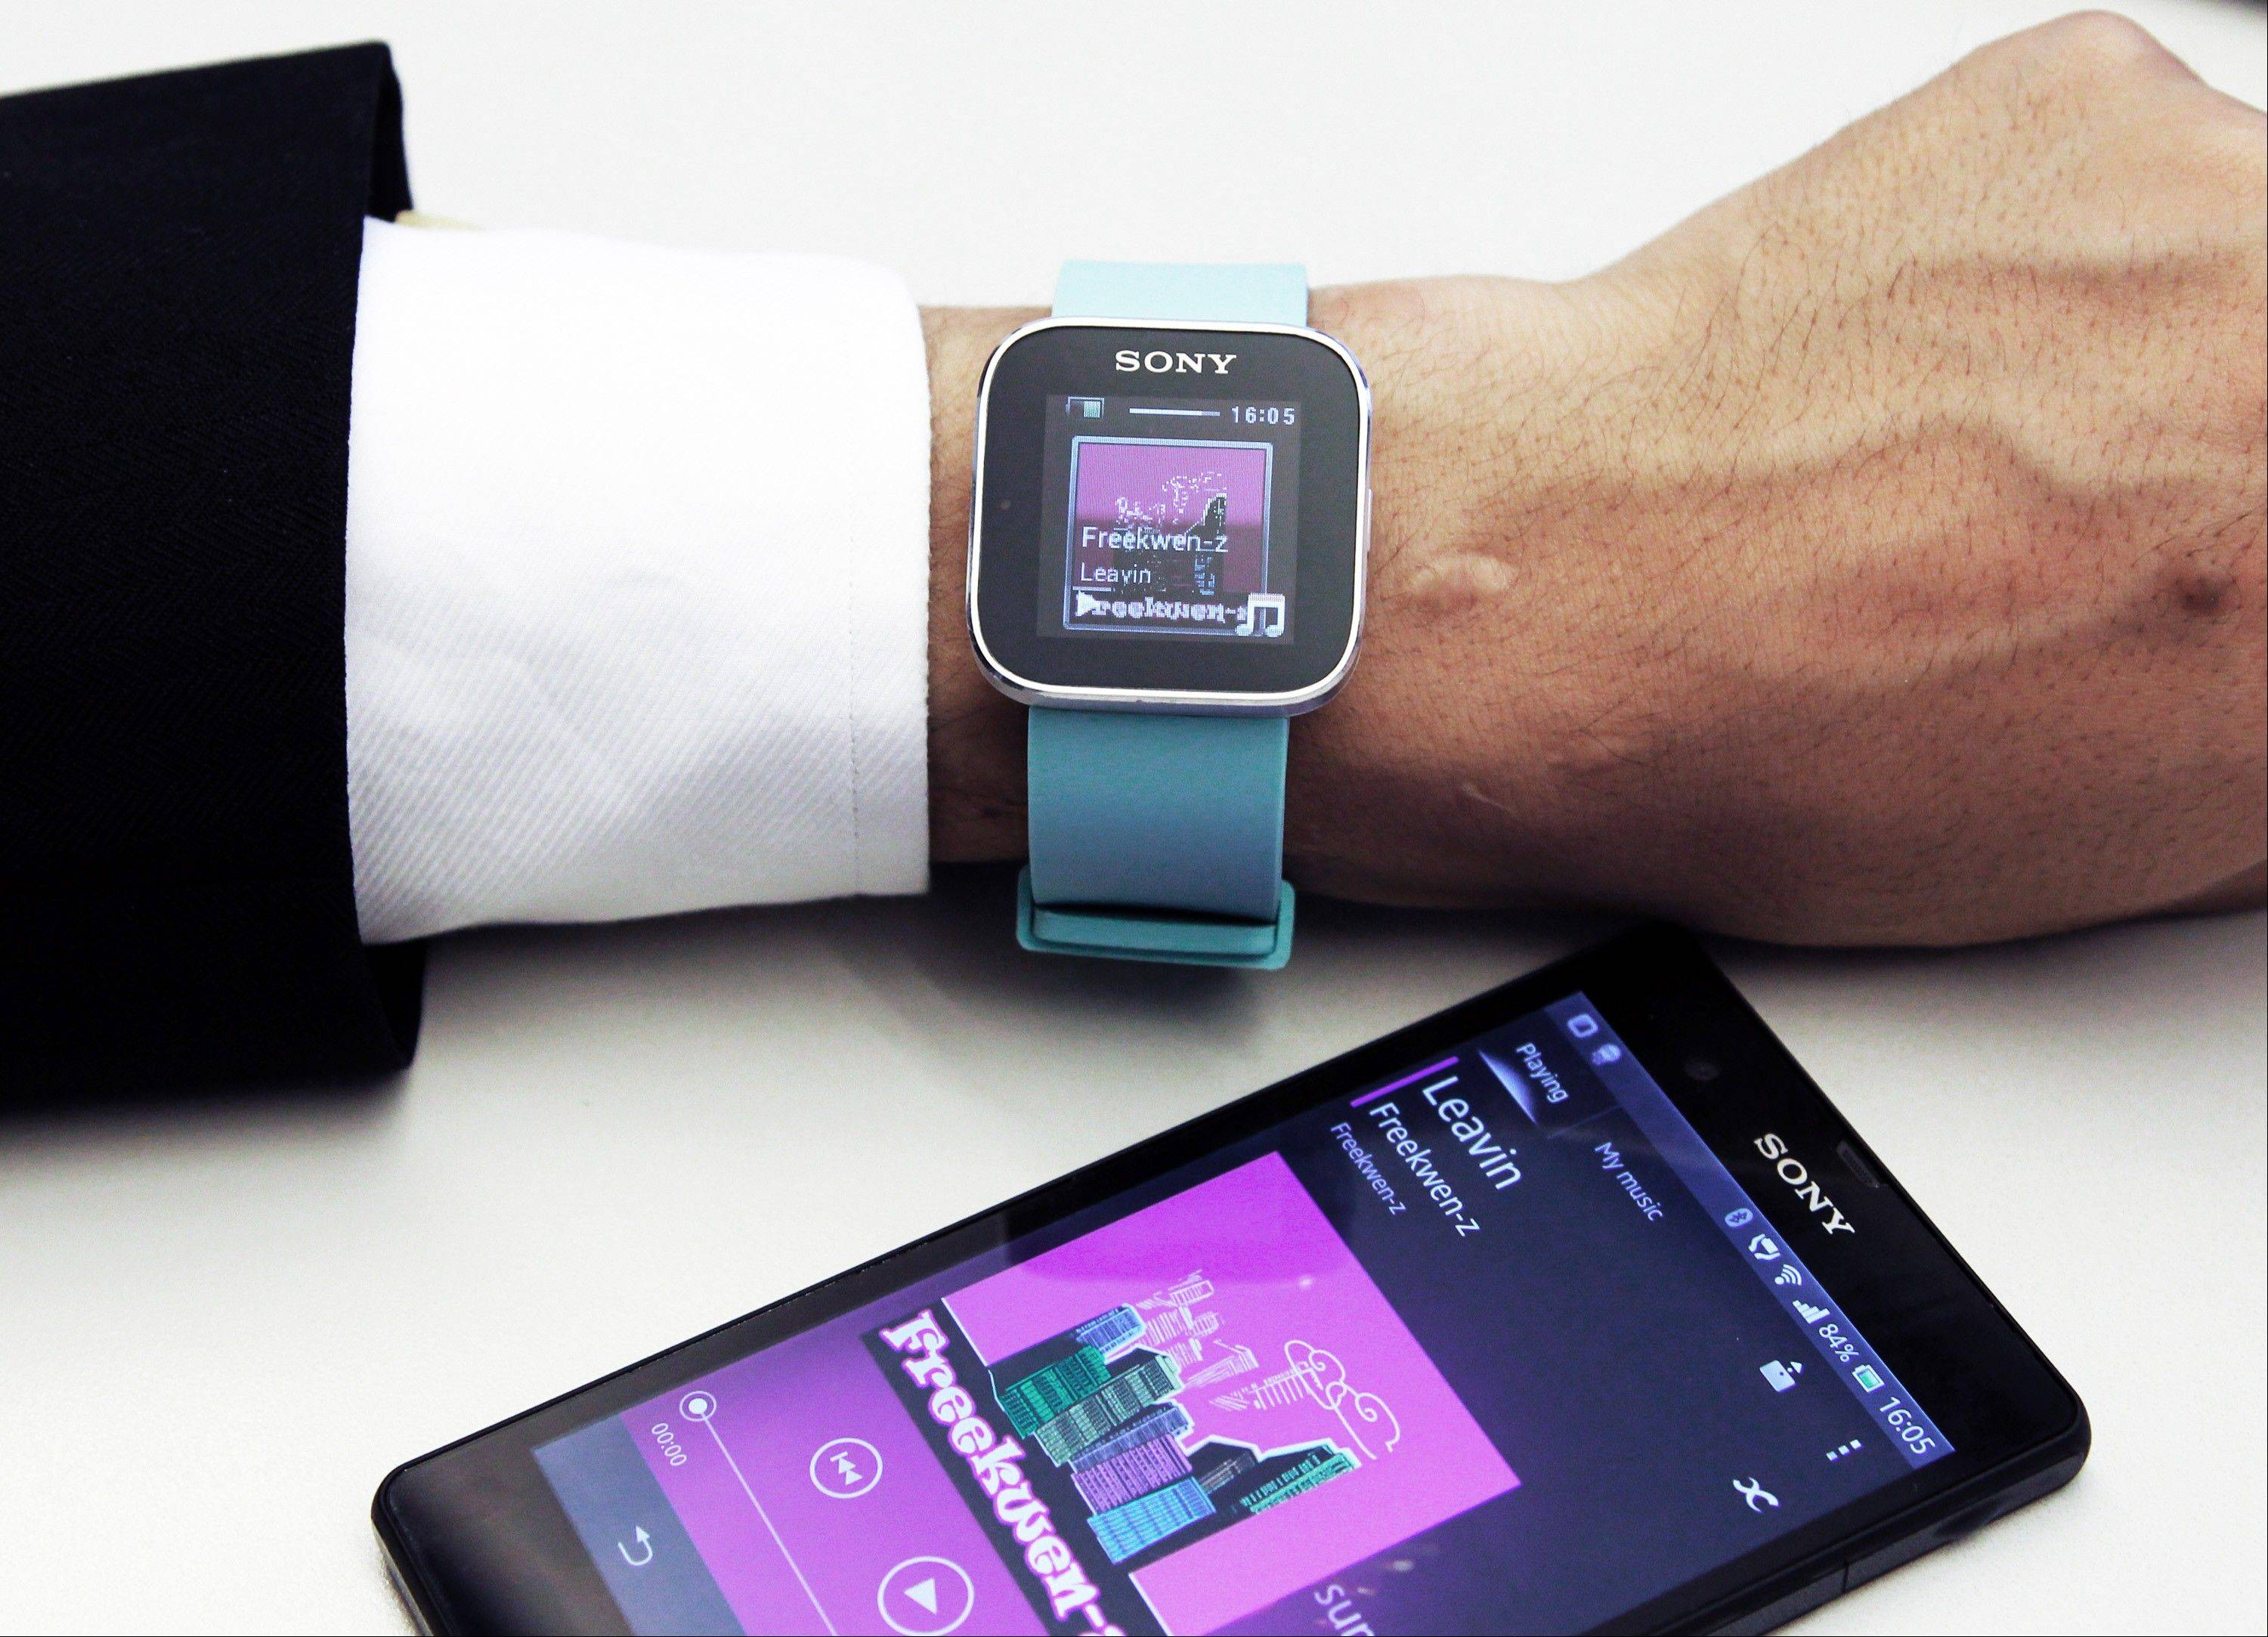 A Sony Mobile Communications Inc. SmartWatch MN2, top, is displayed with the company�s Xperia smartphone at the Sony Corp. headquarters in Tokyo, Japan, on Monday, April 15, 2013. Priced at $130, Sony�s 1.3-inch (3.3-centimeter) touchscreen watch wirelessly connects to Android smartphones using Bluetooth technology. The gadget alerts users to calls and allows them to reply to e-mails or texts with an array of pre-written messages.